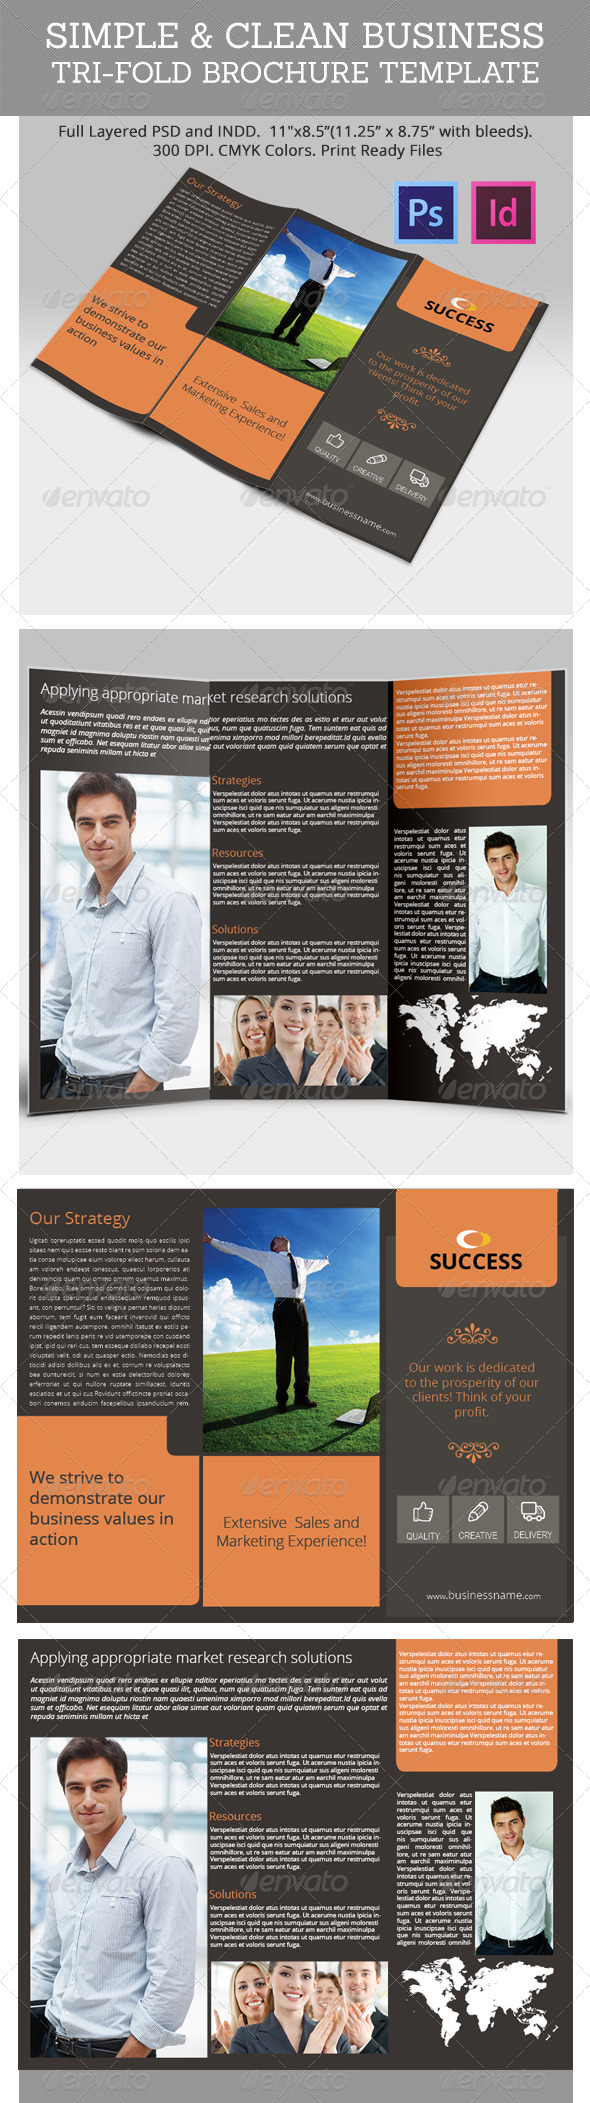 Simple & Clean Business Tri-Fold Brochure Template